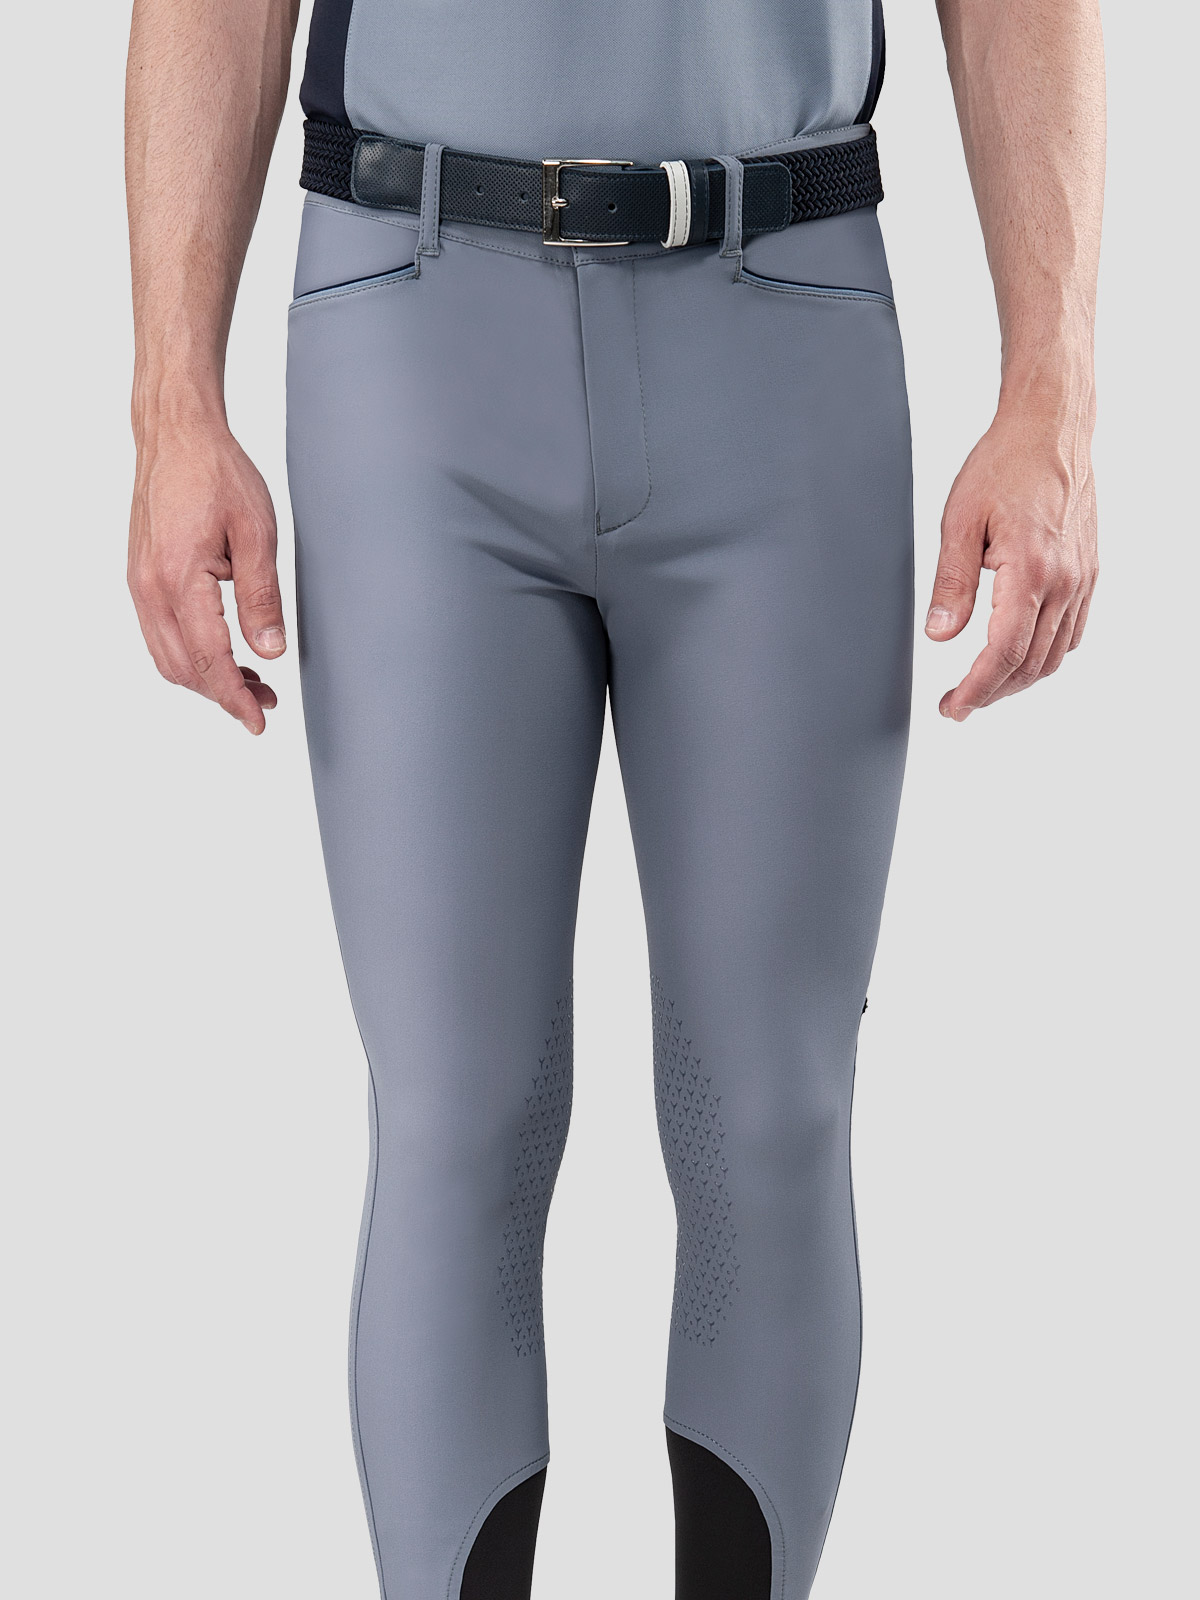 ELIOT MEN'S KNEE GRIP BREECHES in B-MOVE 1